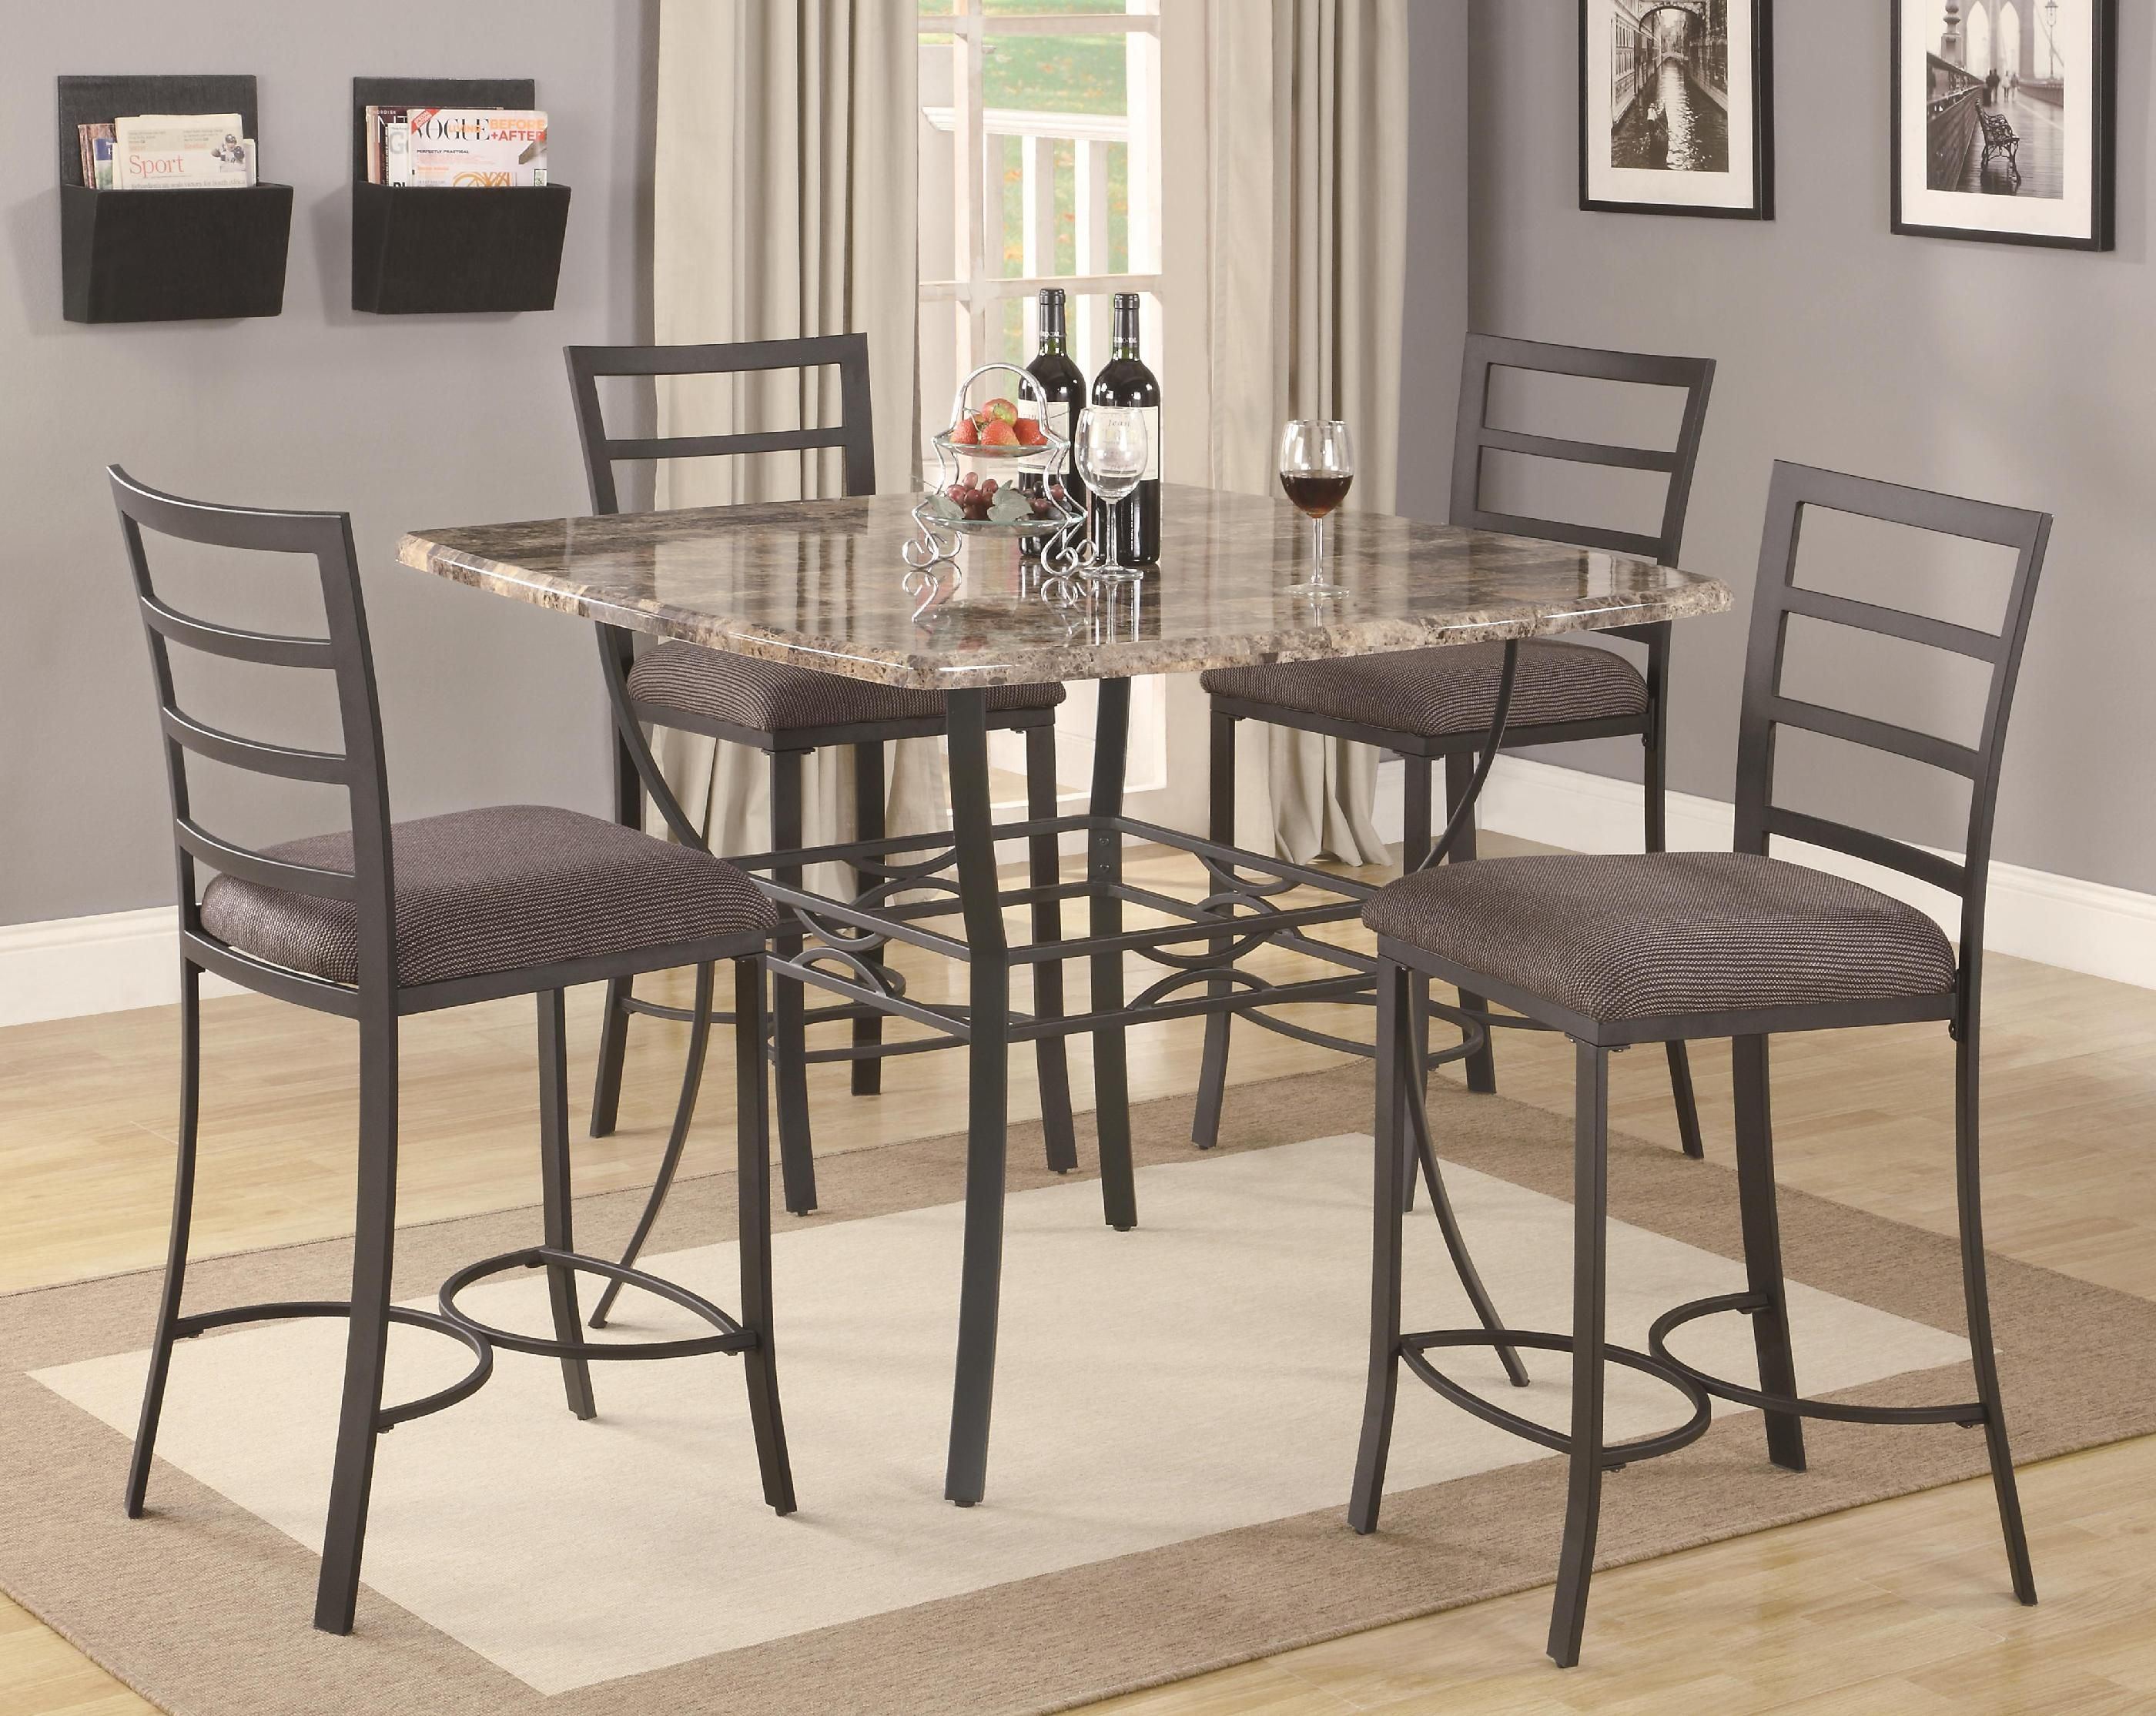 Granite Dining Room Furniture Awesome Chic Stainless Steel Counter Height Bar Stools With Comfy Pad Design Decoration